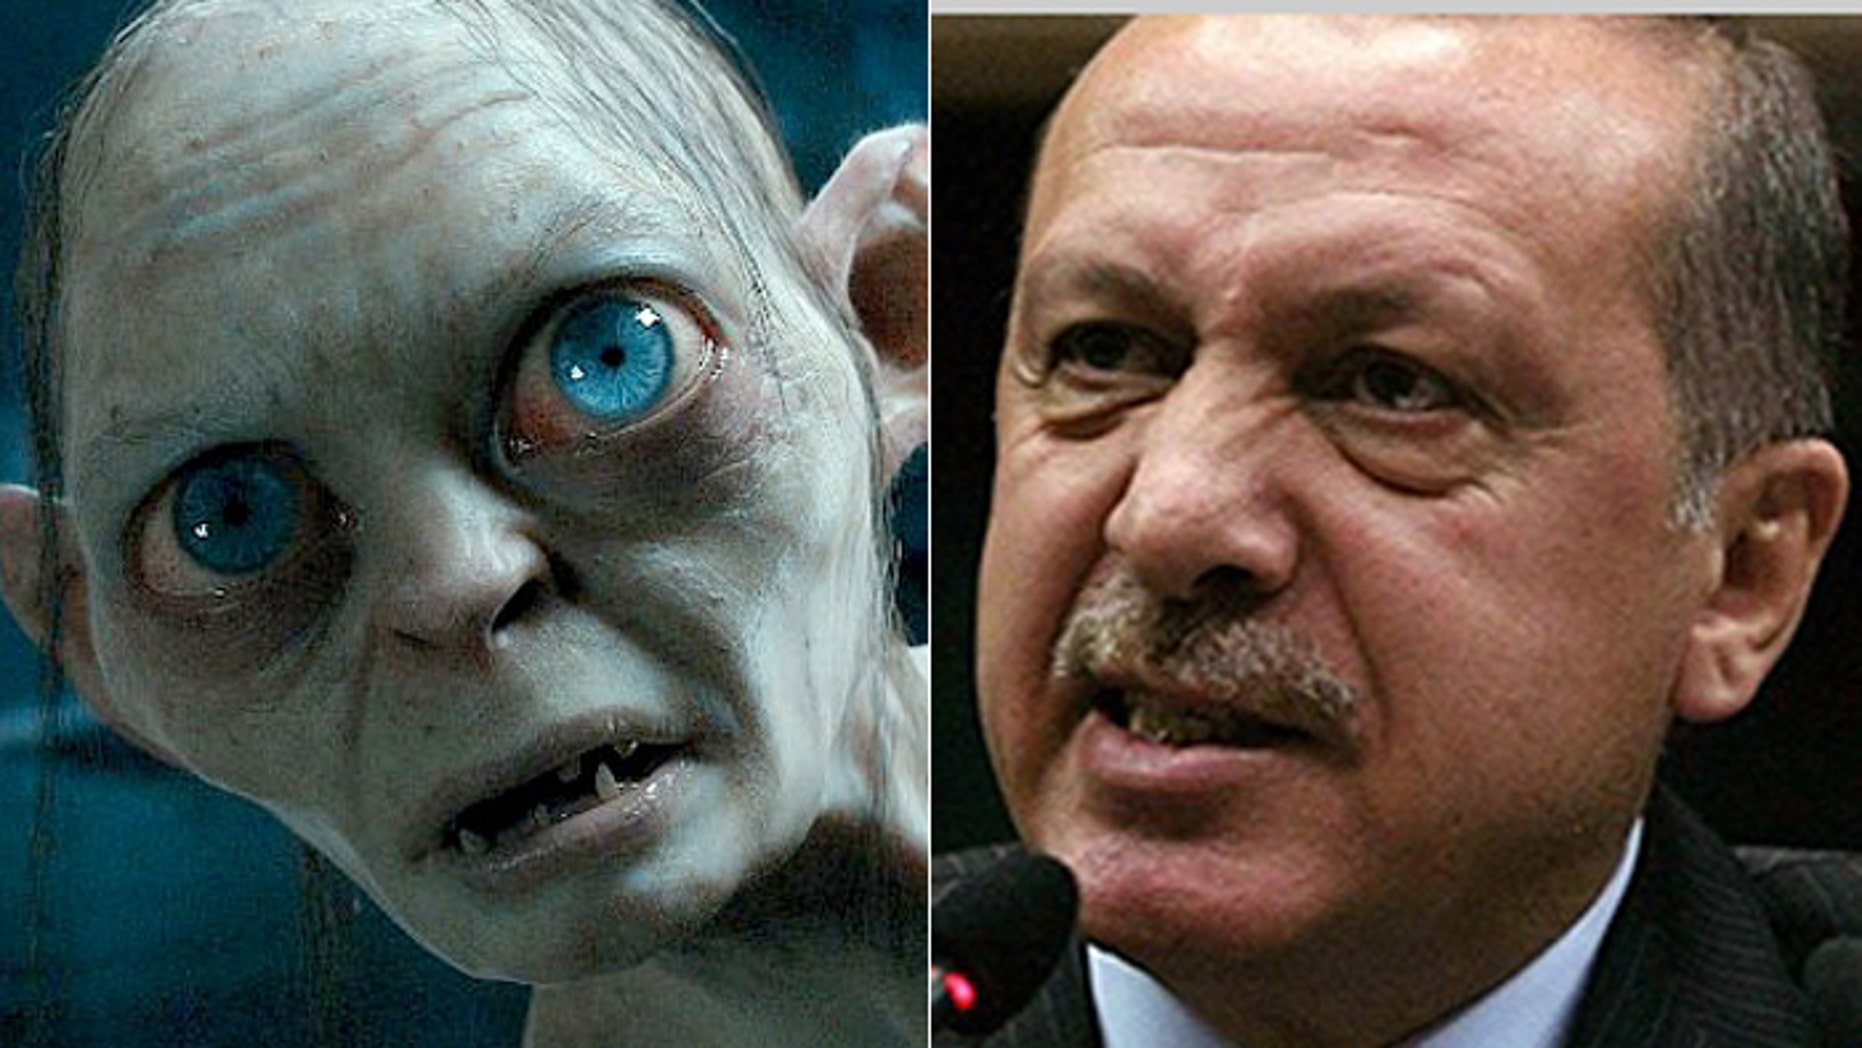 """A Turkish doctor faces prison time if it is proven that comparing President Erdogan, (r.), to """"Lord of the Rings"""" character Gollum, (l.), is indeed an insult."""